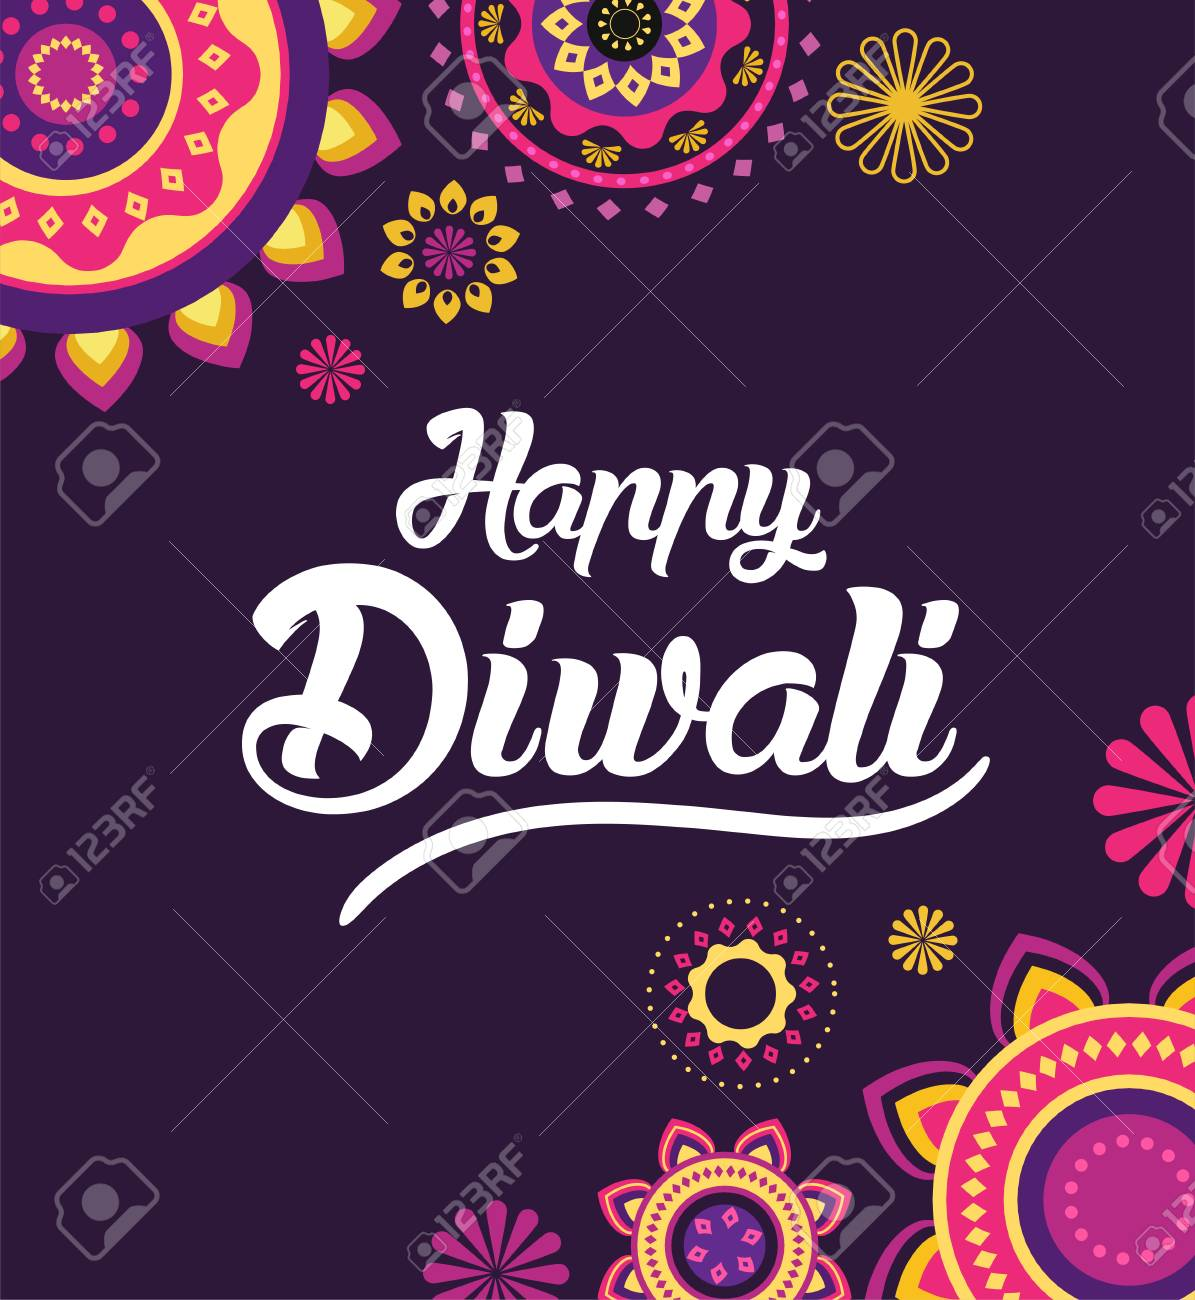 Happy diwali greeting card for hindu community indian festival happy diwali greeting card for hindu community indian festival background illustration stock vector m4hsunfo